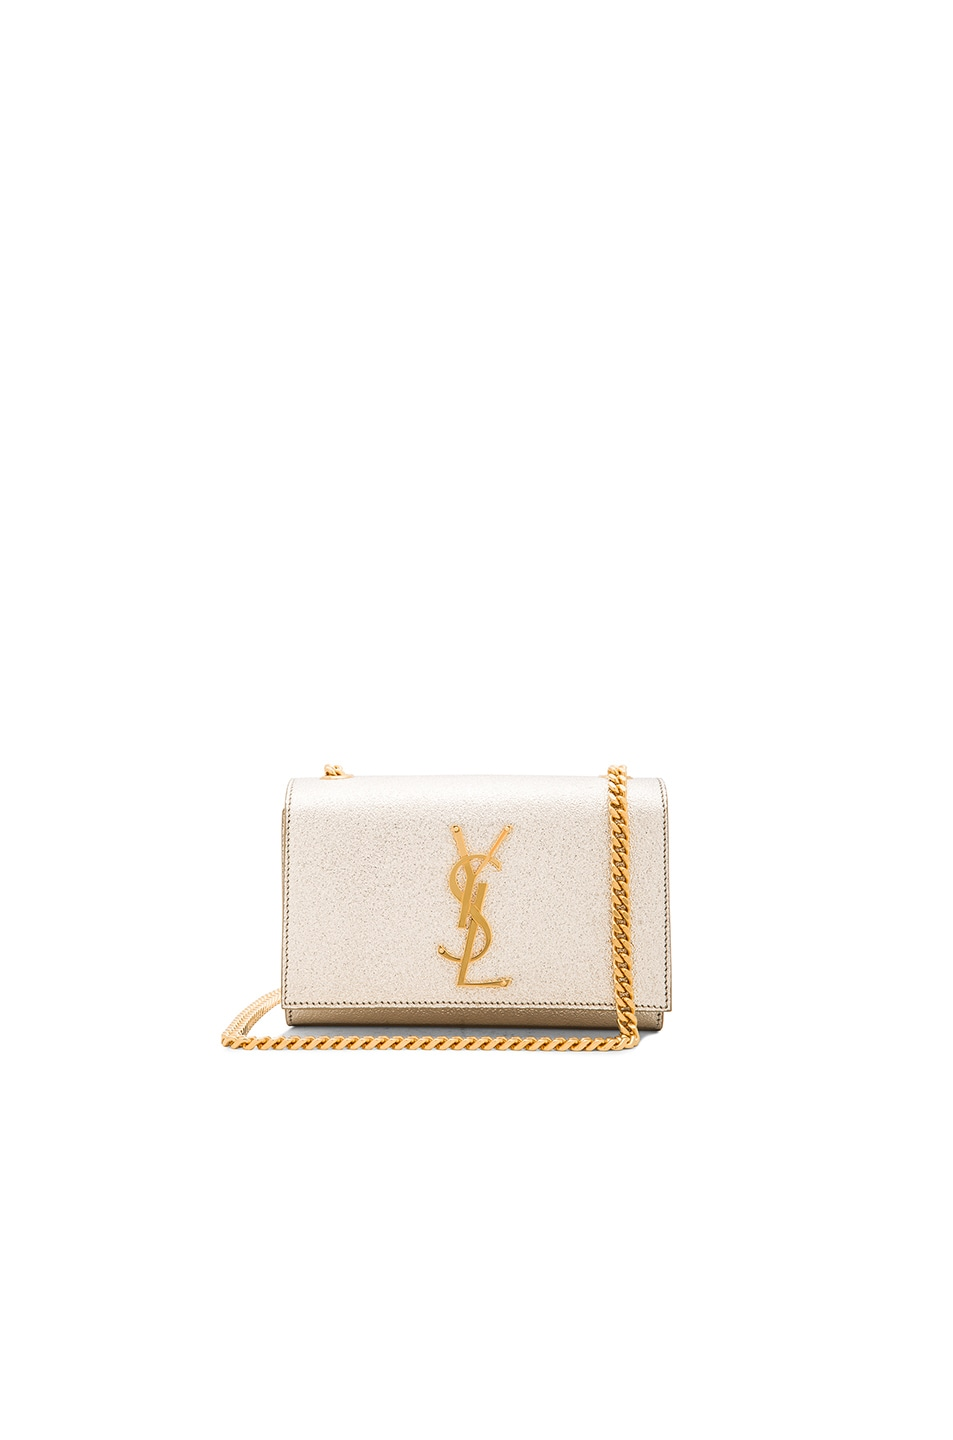 3ce4ac3c044 Image 1 of Saint Laurent Small Monogramme Chain Bag in Pale Gold